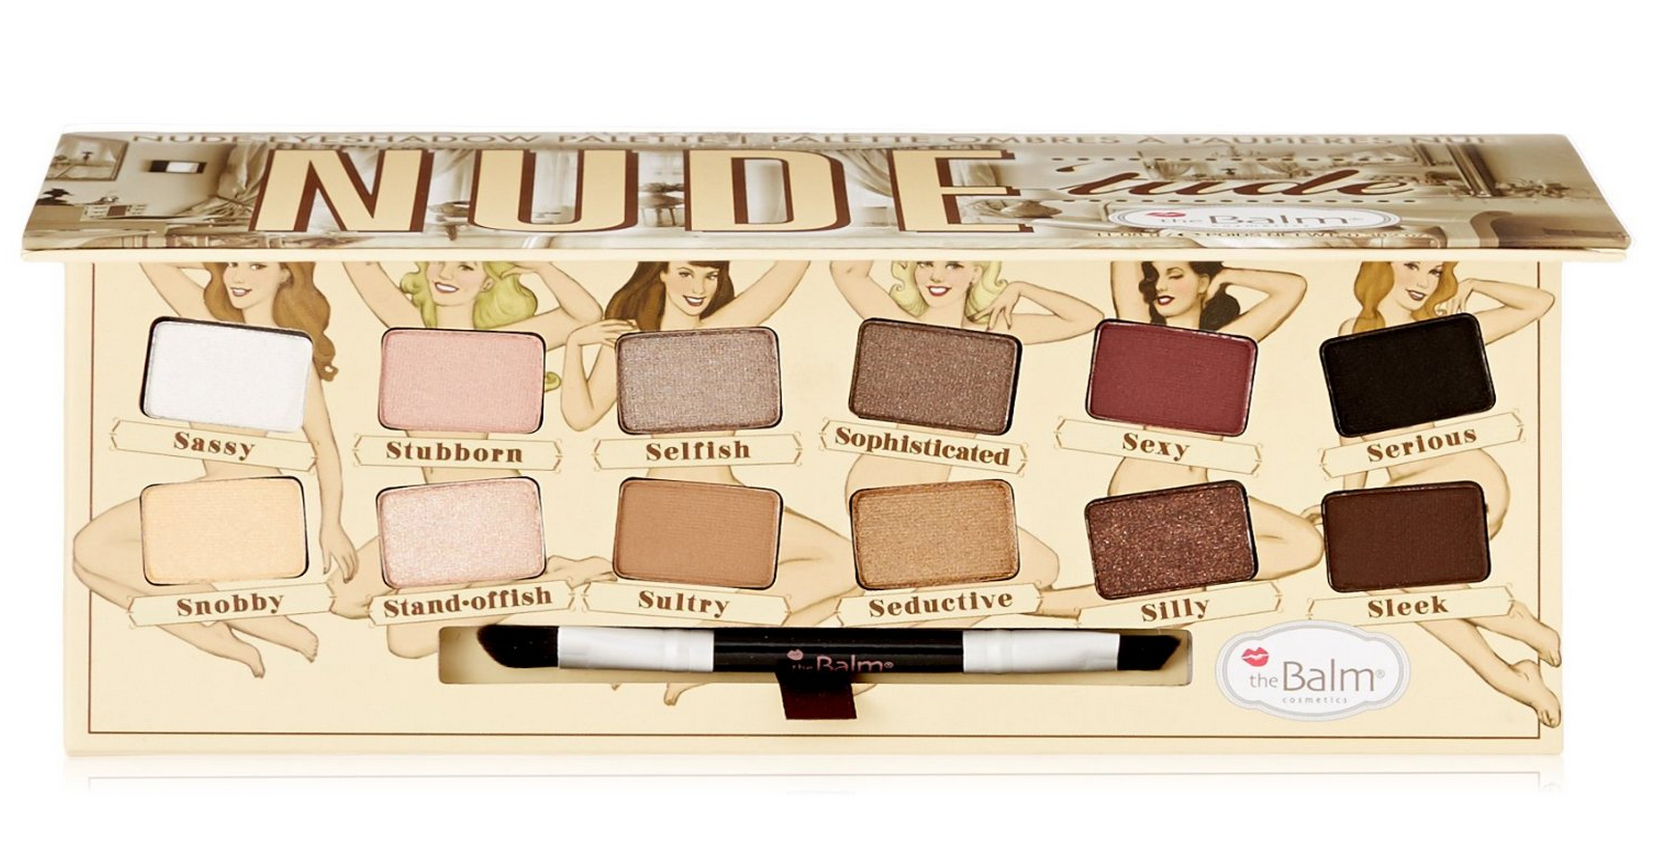 Highly Rated NUDE 'tude  Eyeshadow Palette Only $28.38 (Reg. $36!)